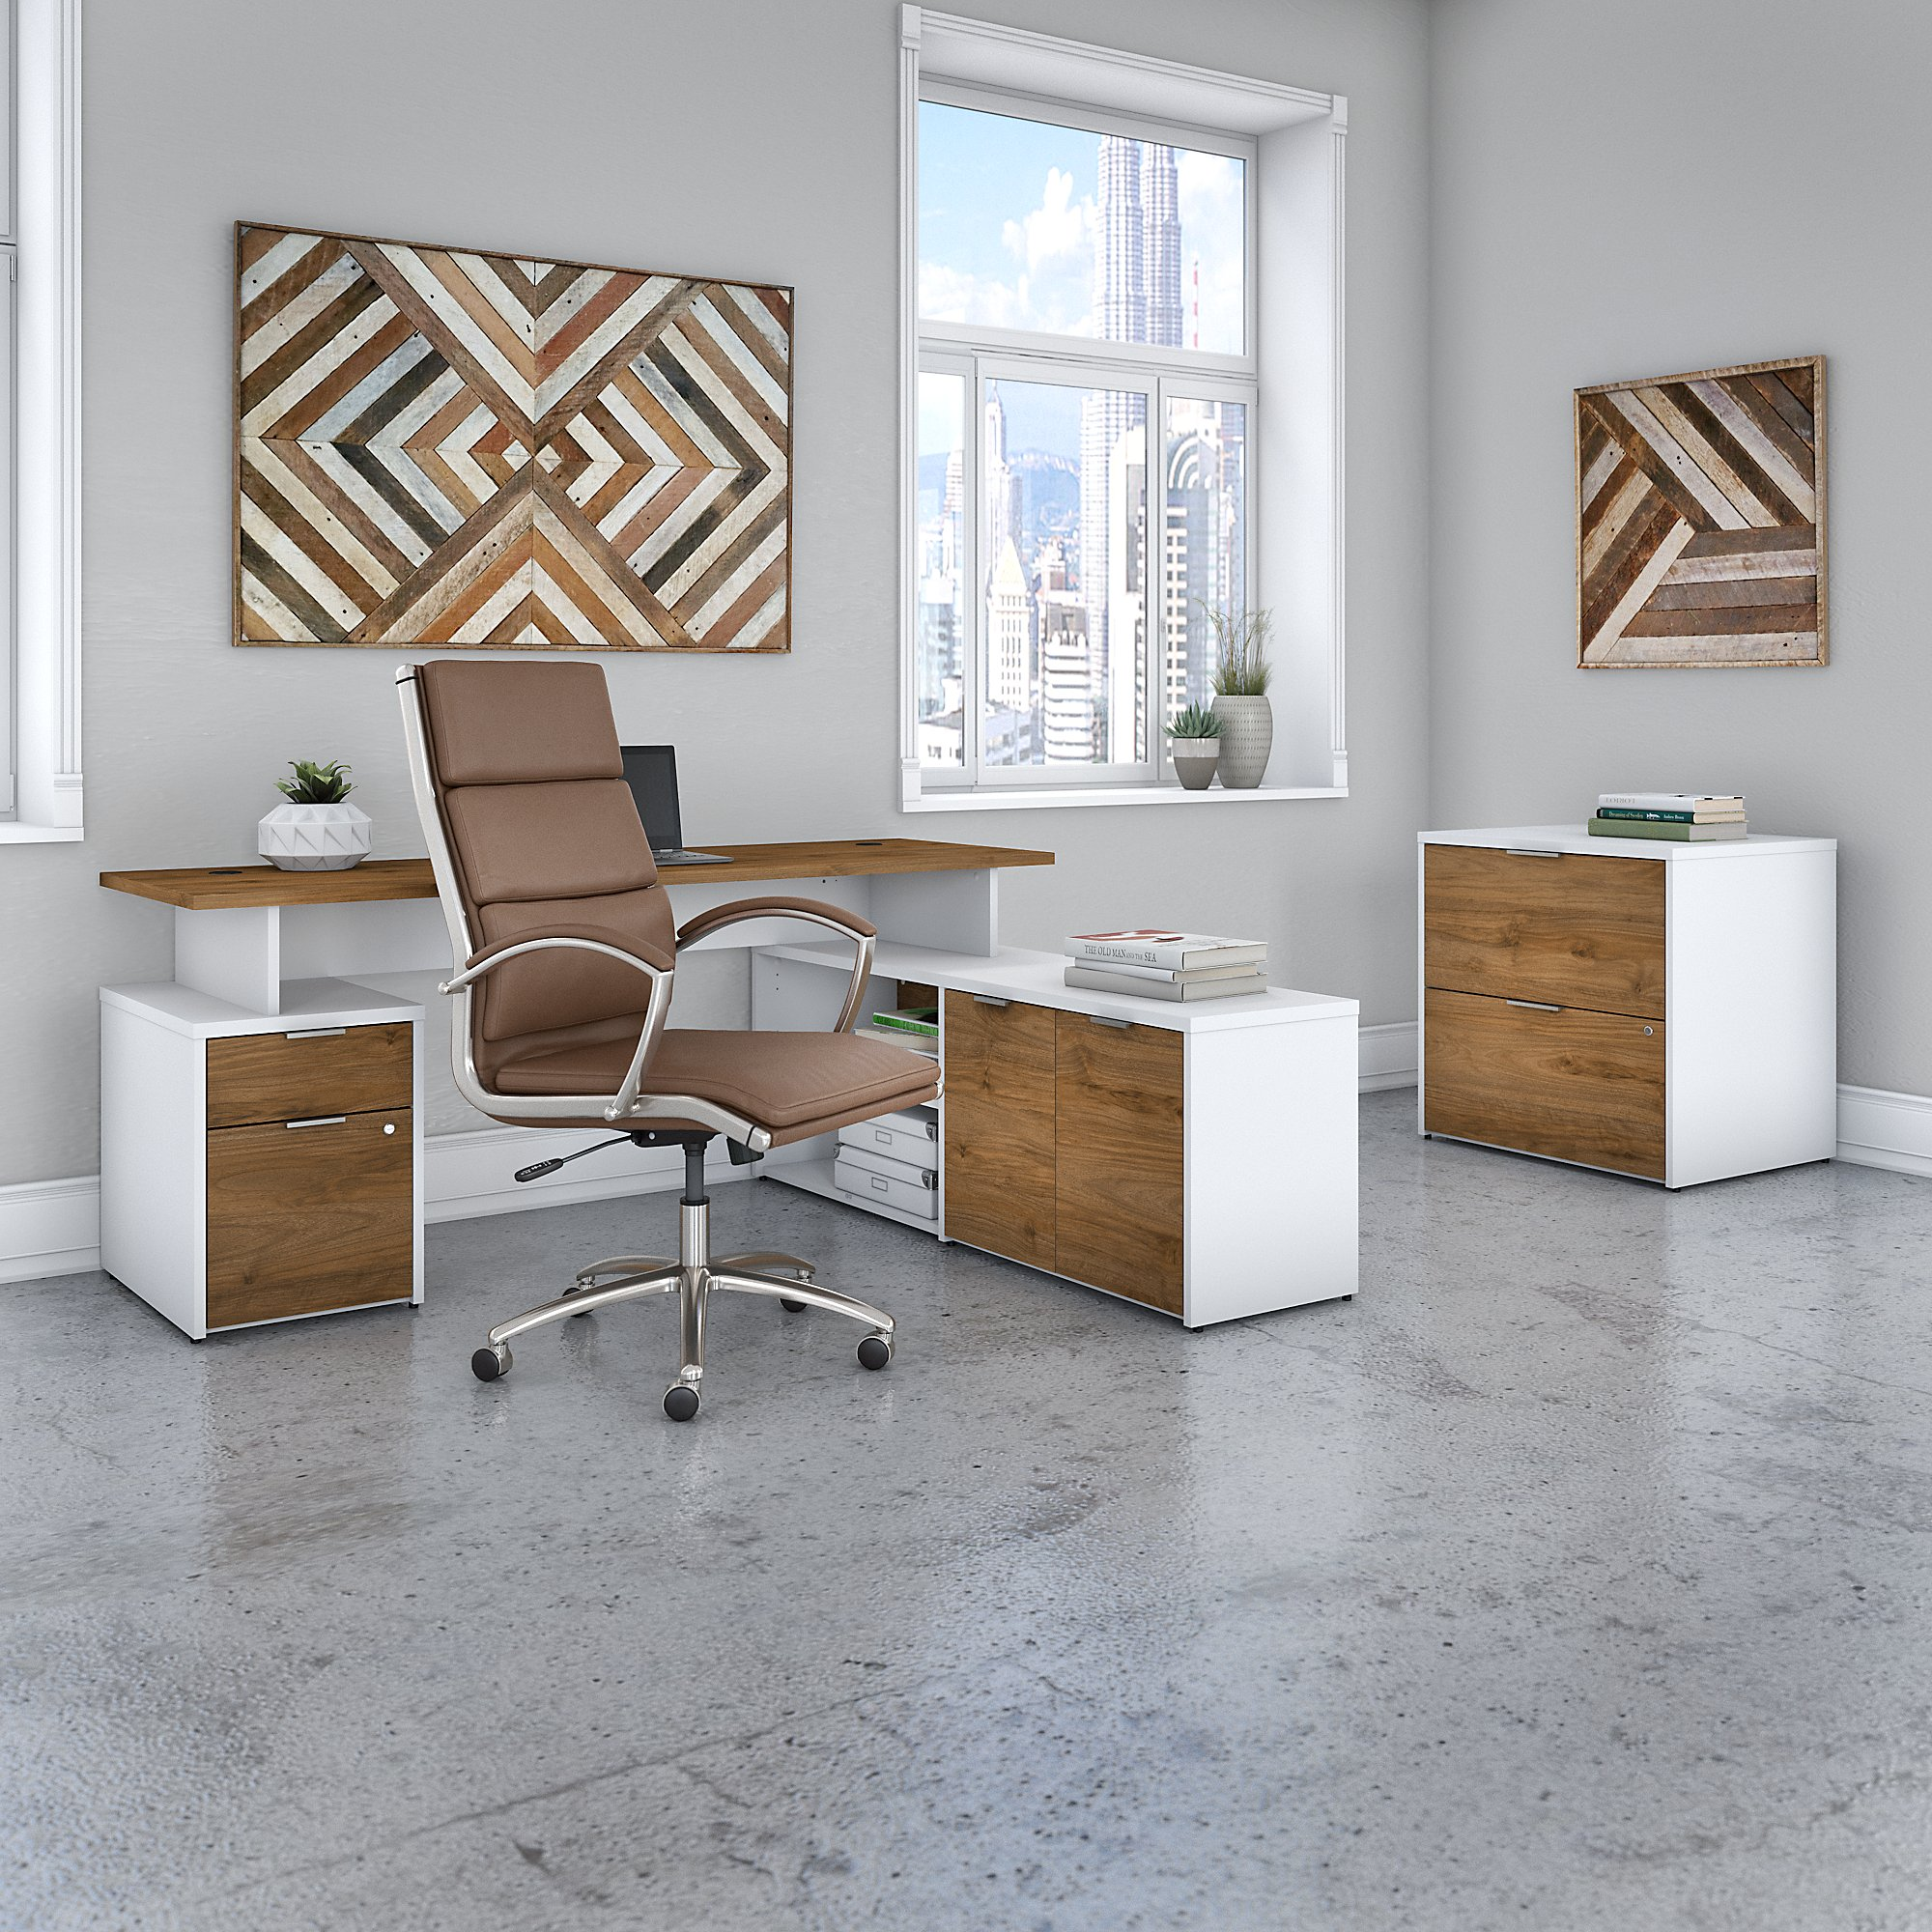 bush business furniture walnut jamestown furniture set with matching office chair